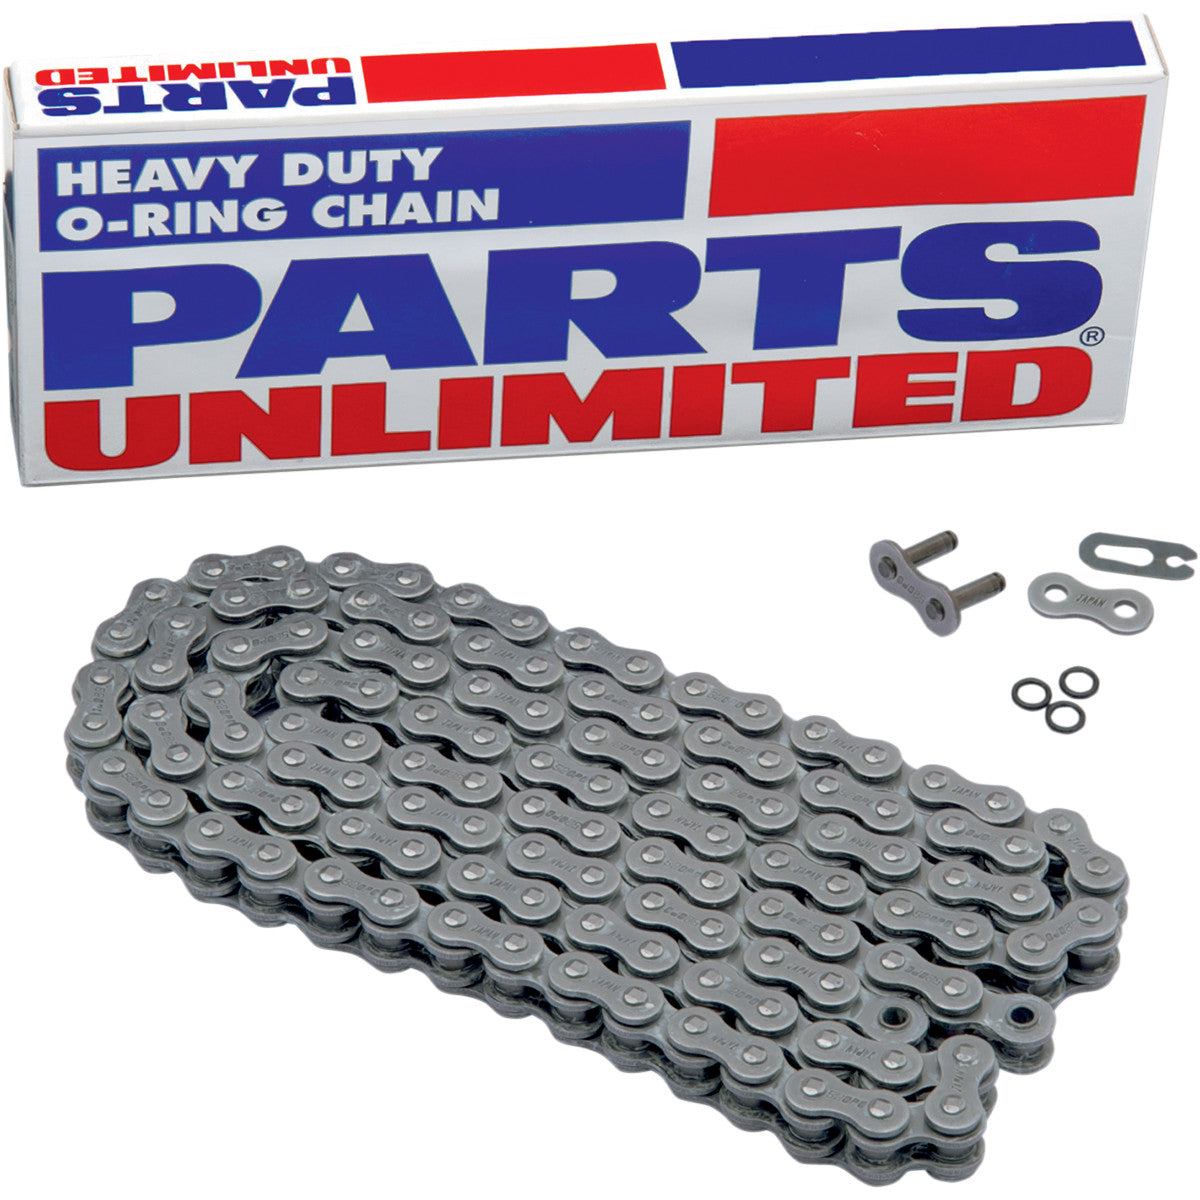 PARTS UNLIMITED-CHAIN CHAIN PU 530 O-RNG X 150L